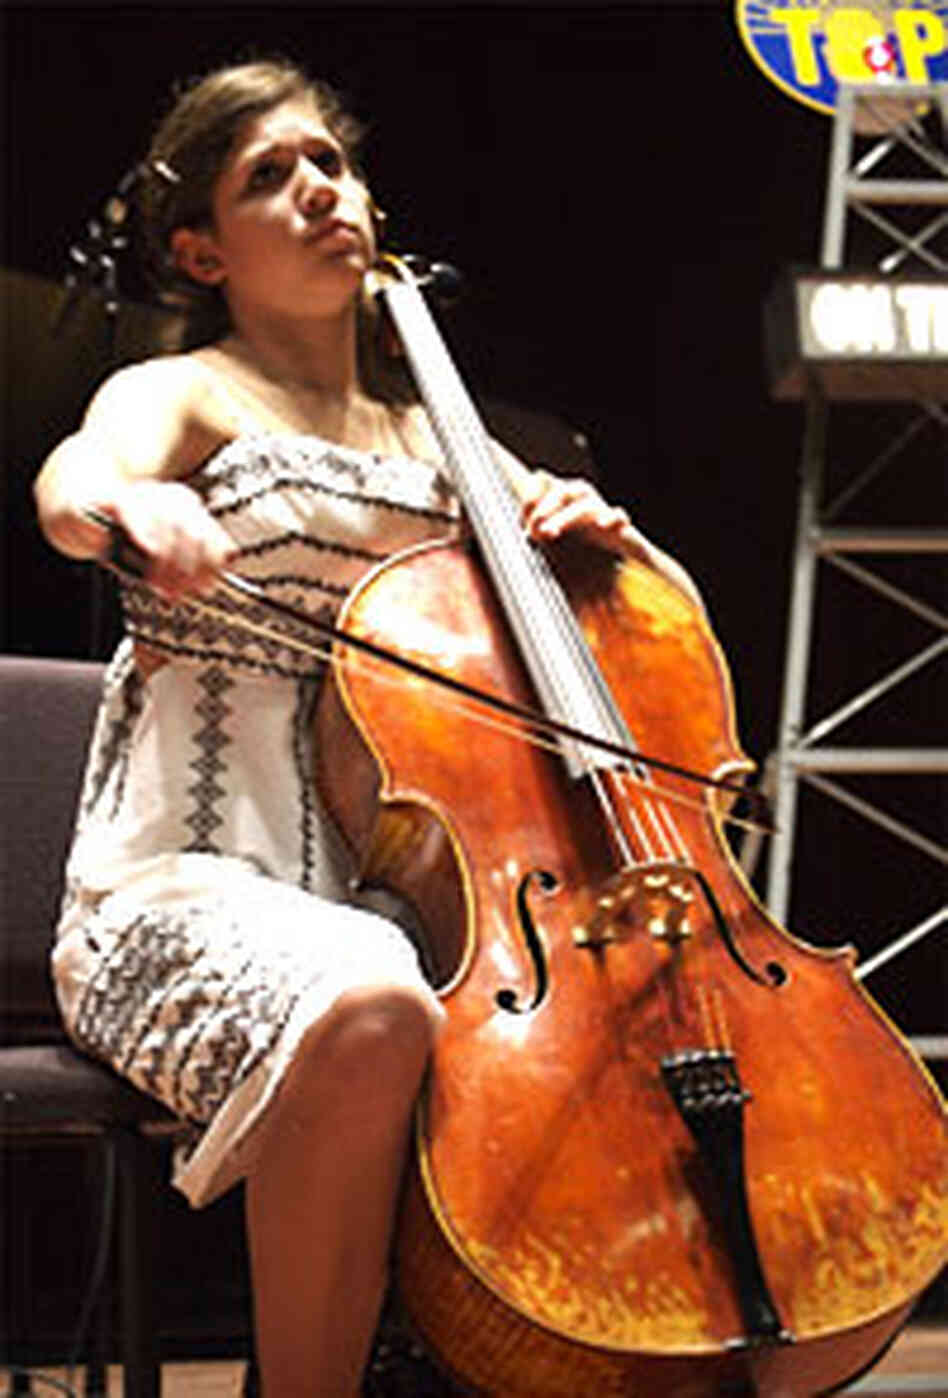 Cellist Jennie Brent